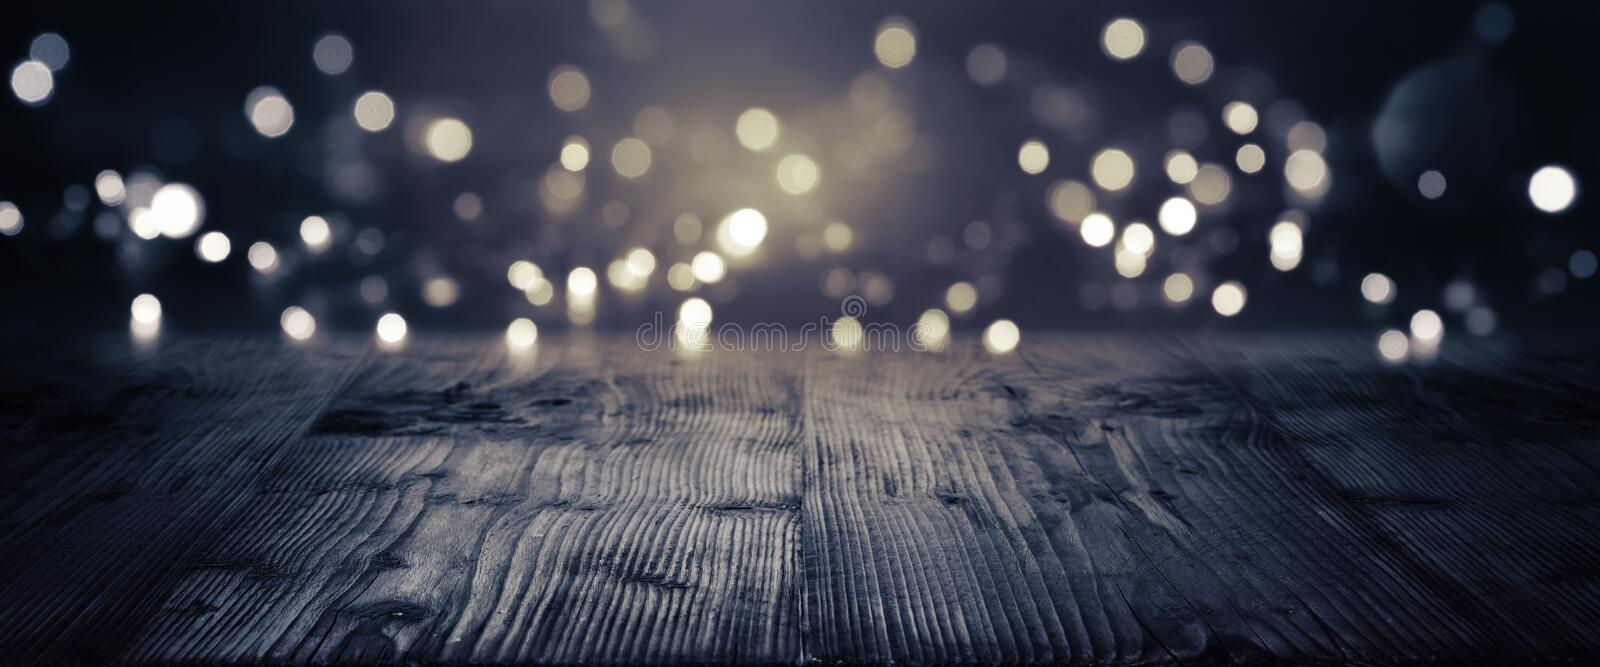 Gold and silver bokeh on a dark background. With empty wooden floor for a festive concept stock image